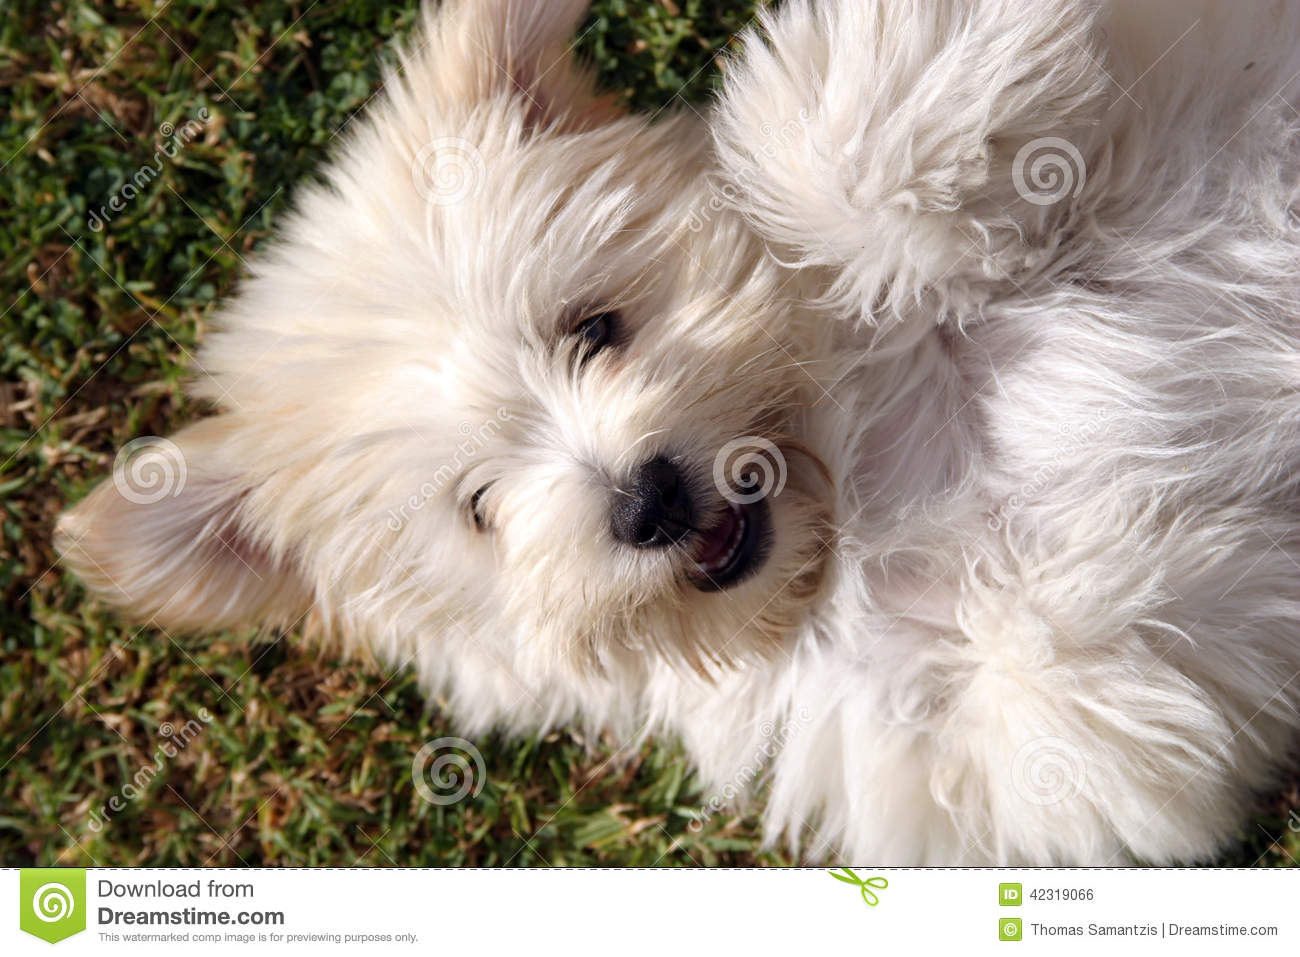 Cute Fluffy Puppy Dog Stock Photo Image Of Cute White 42319066